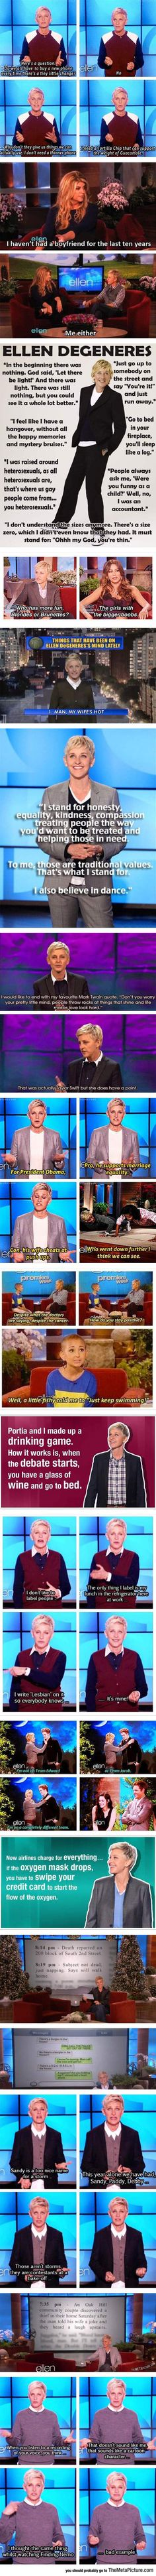 The Quick Wittiness Of Ellen